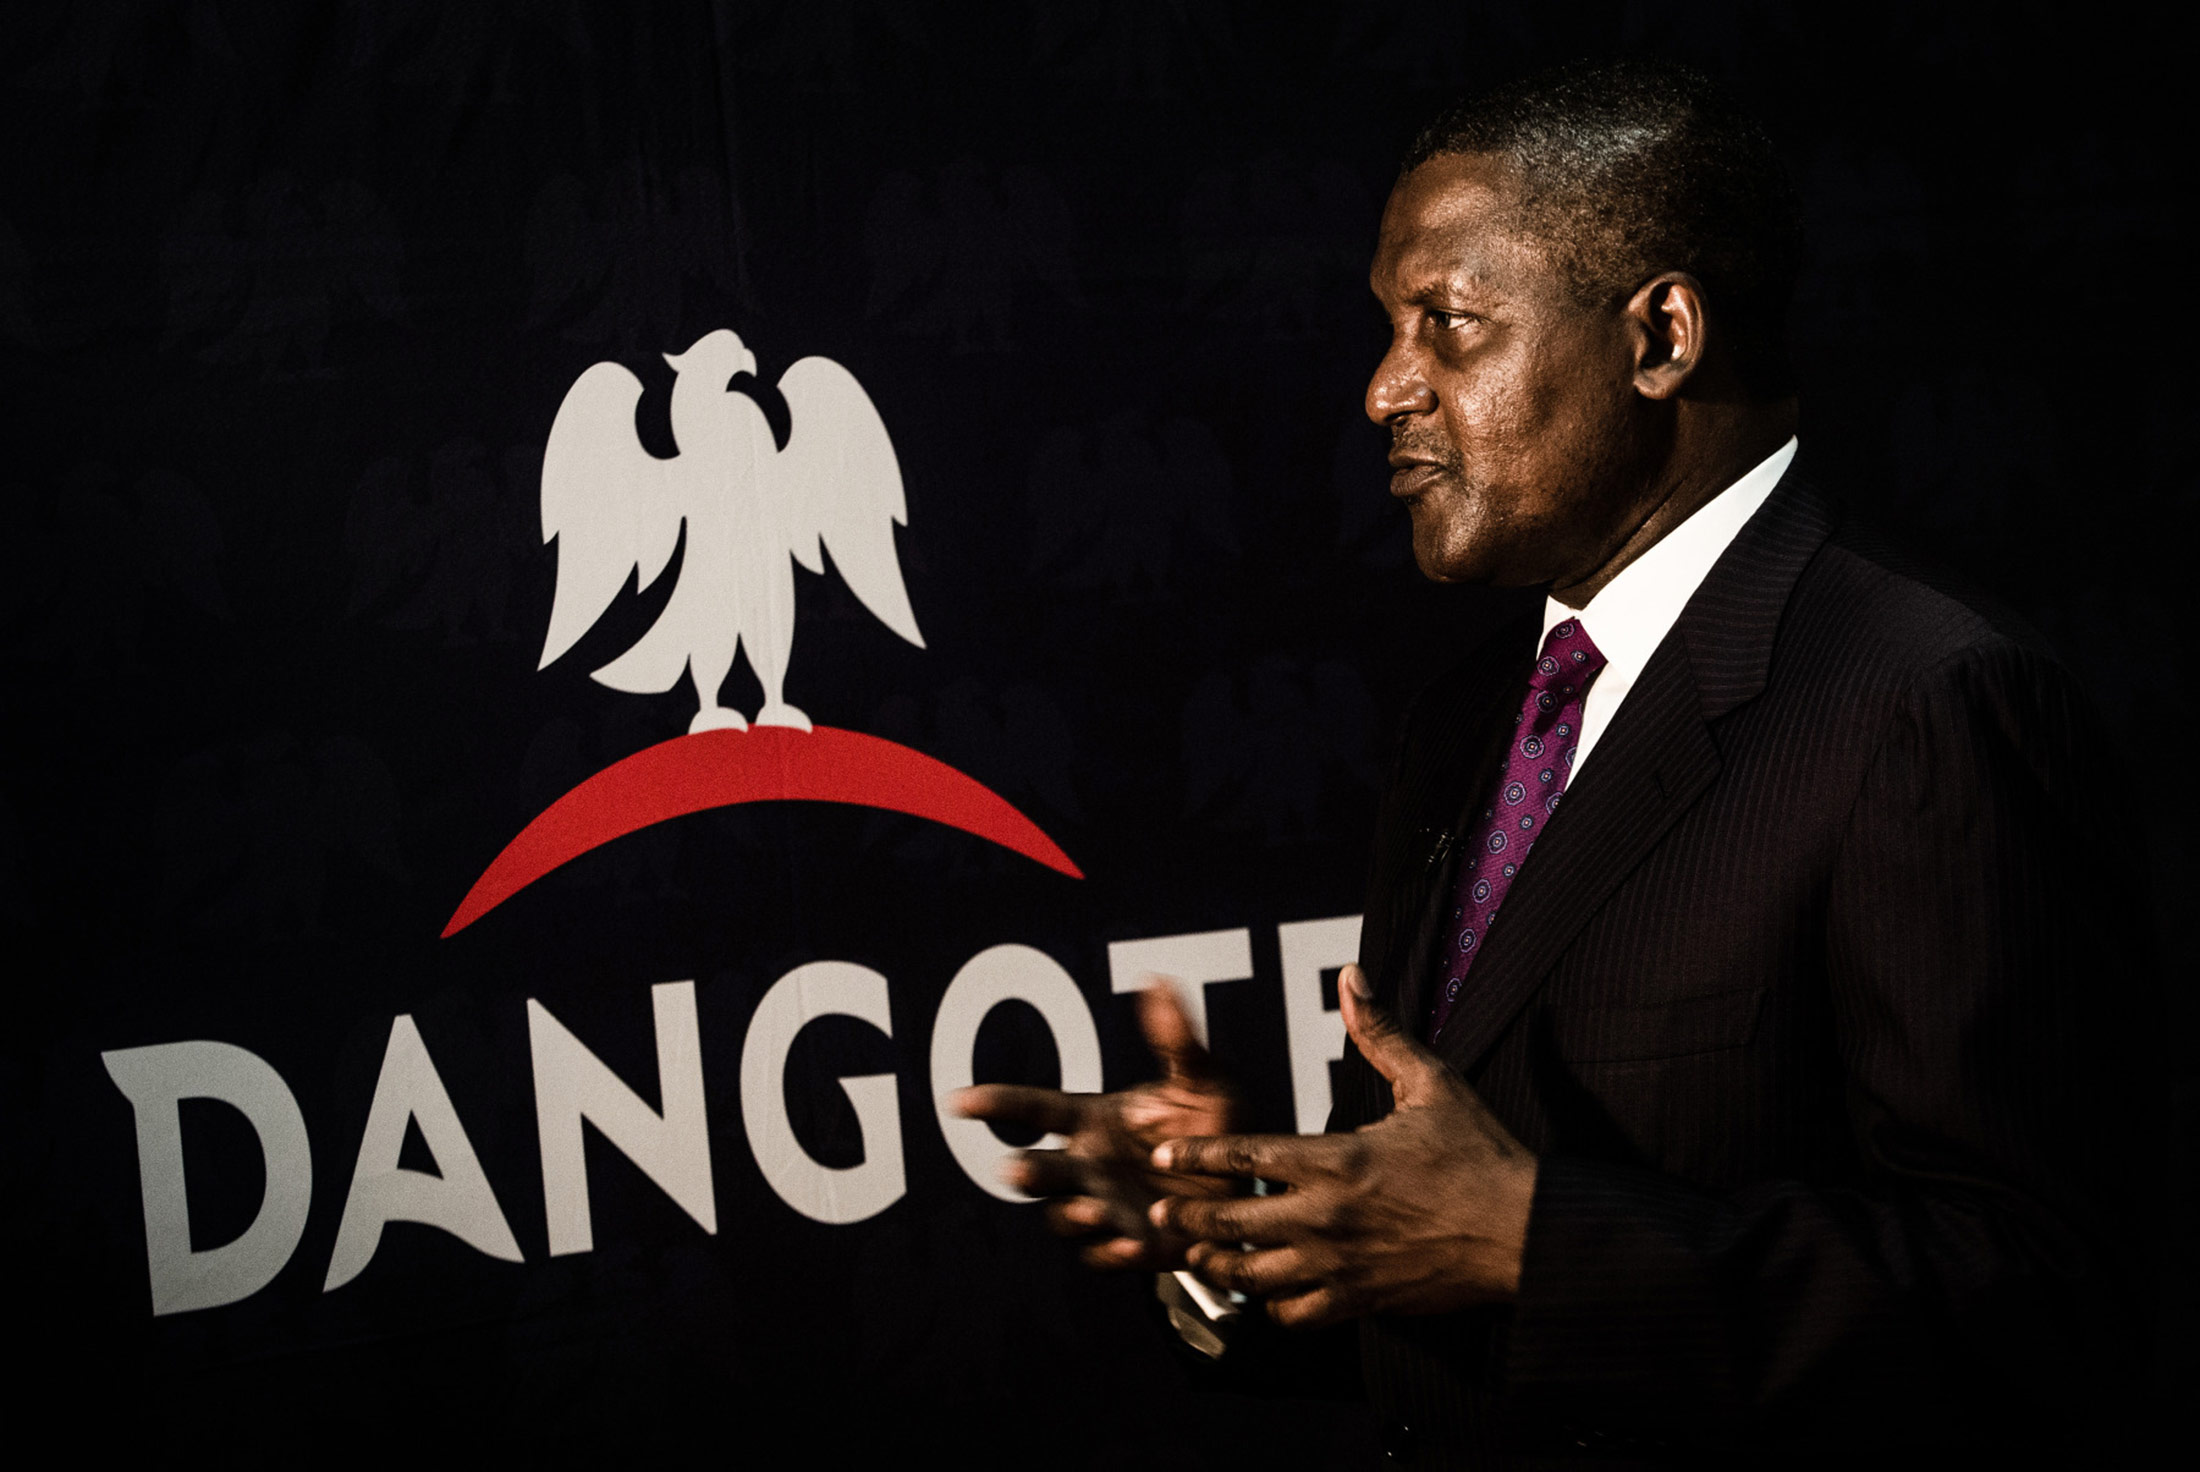 Why Dangote is advocating for a proper consumer credit system in Nigeria